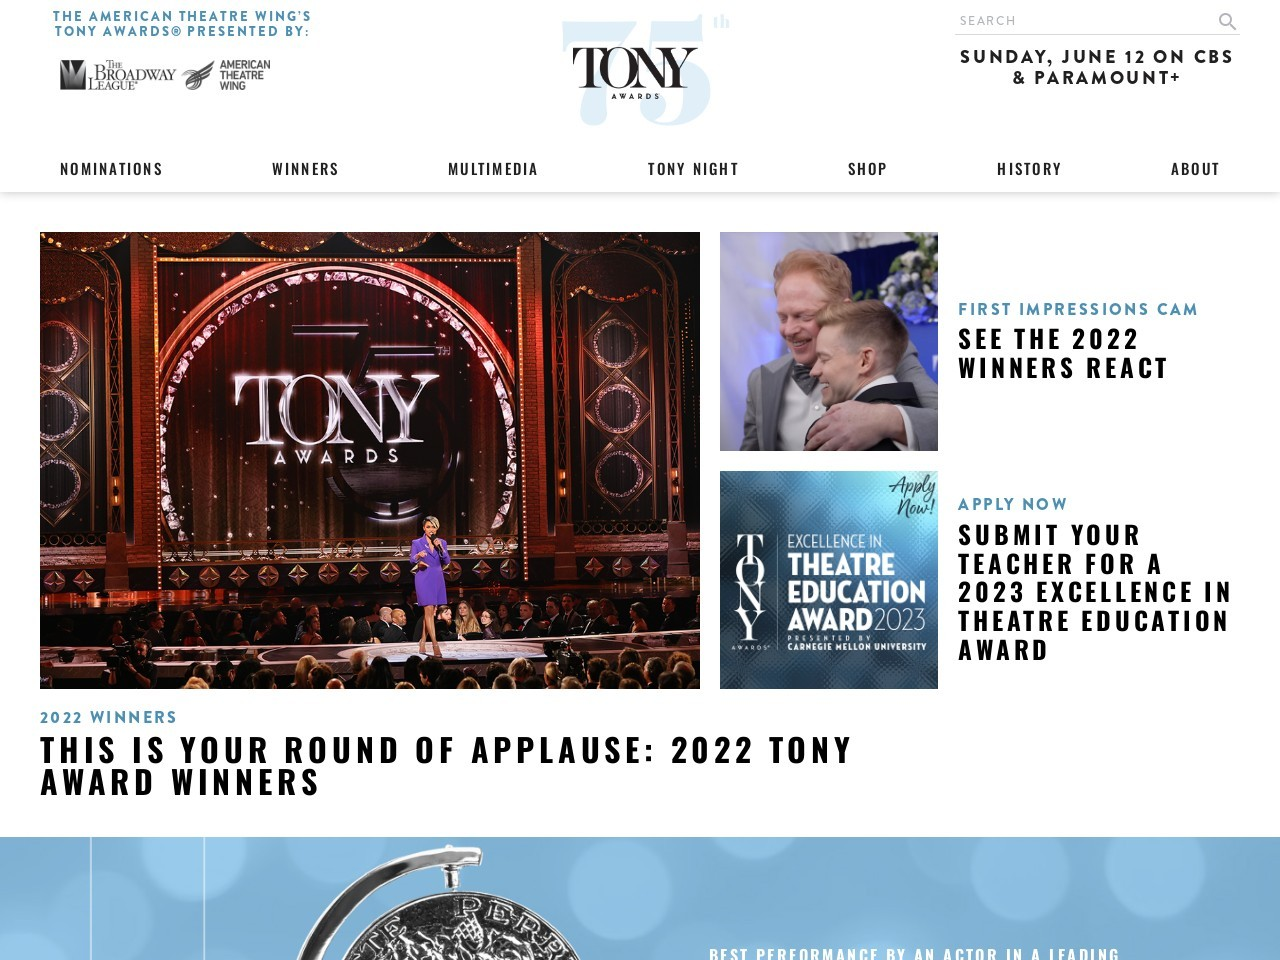 Beetlejuice | The American Theatre Wing's Tony Awards®